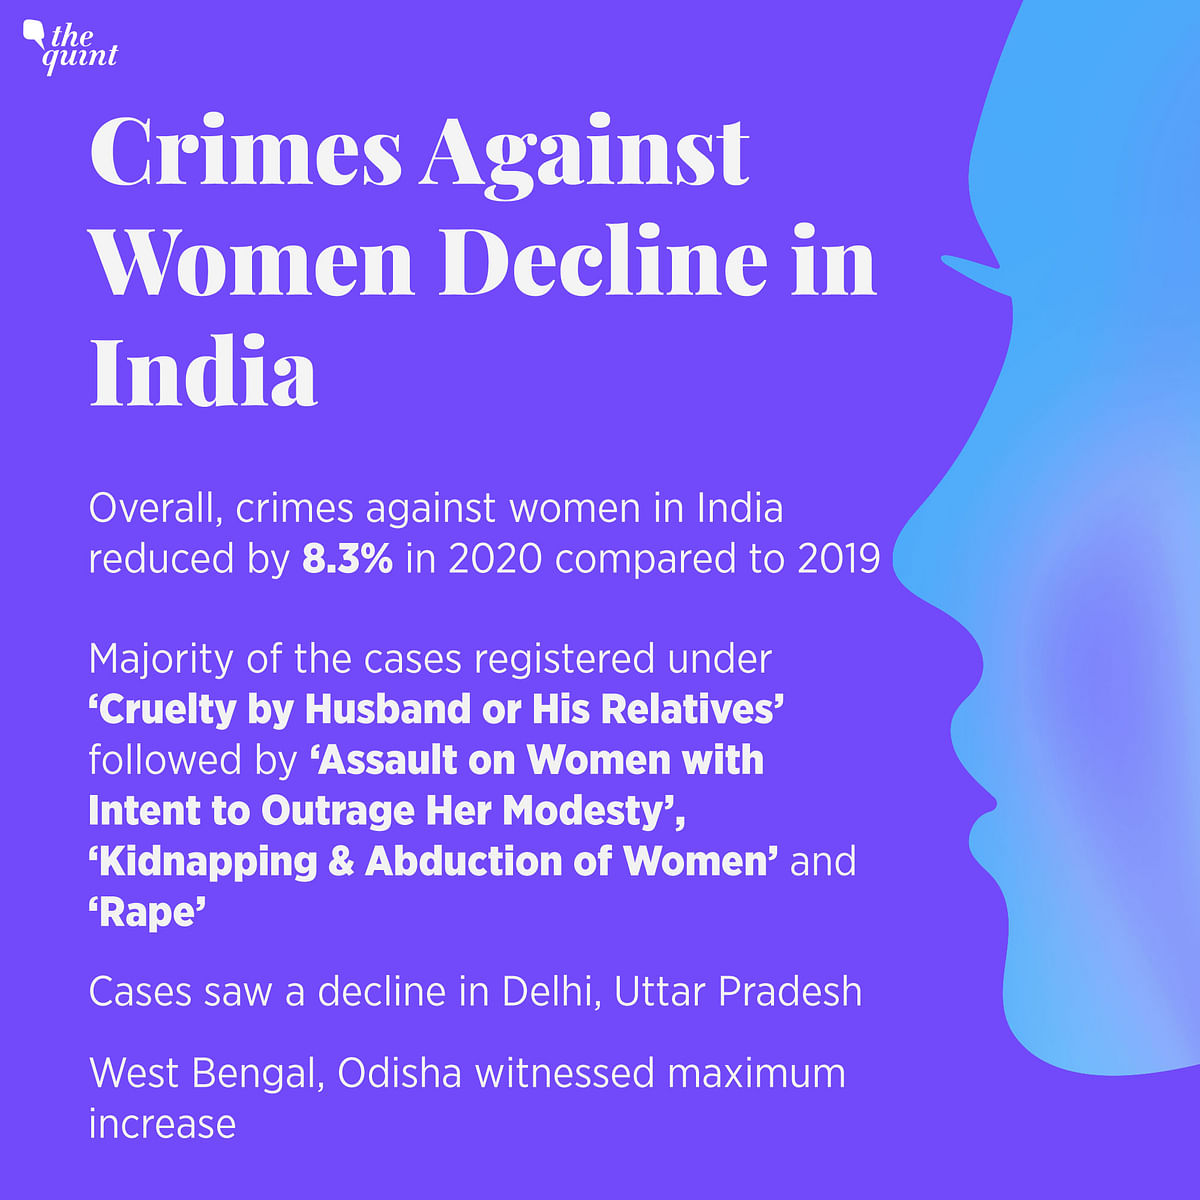 WB, Odisha See Max Increase in Crimes Against Women; Total Crime Rate Up by 28%